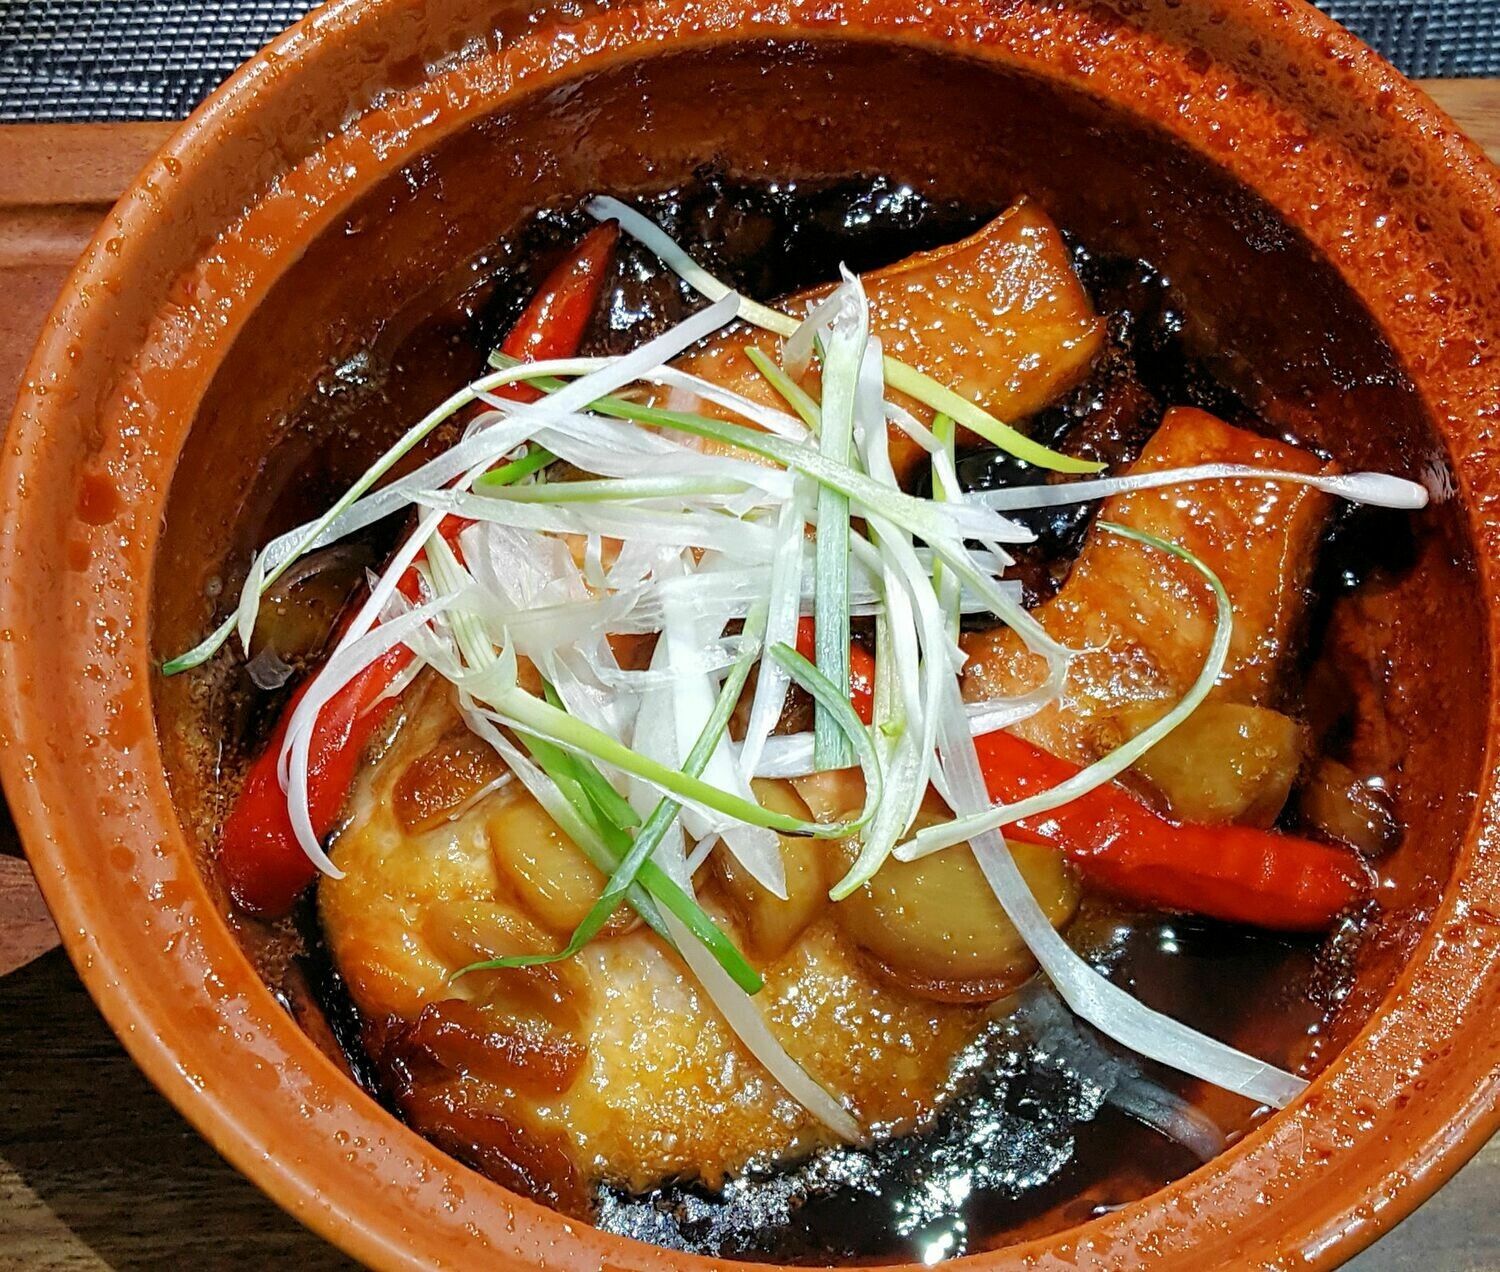 (CA THU KHO TO) Braised & Caramelized King Fish In Clay Pot